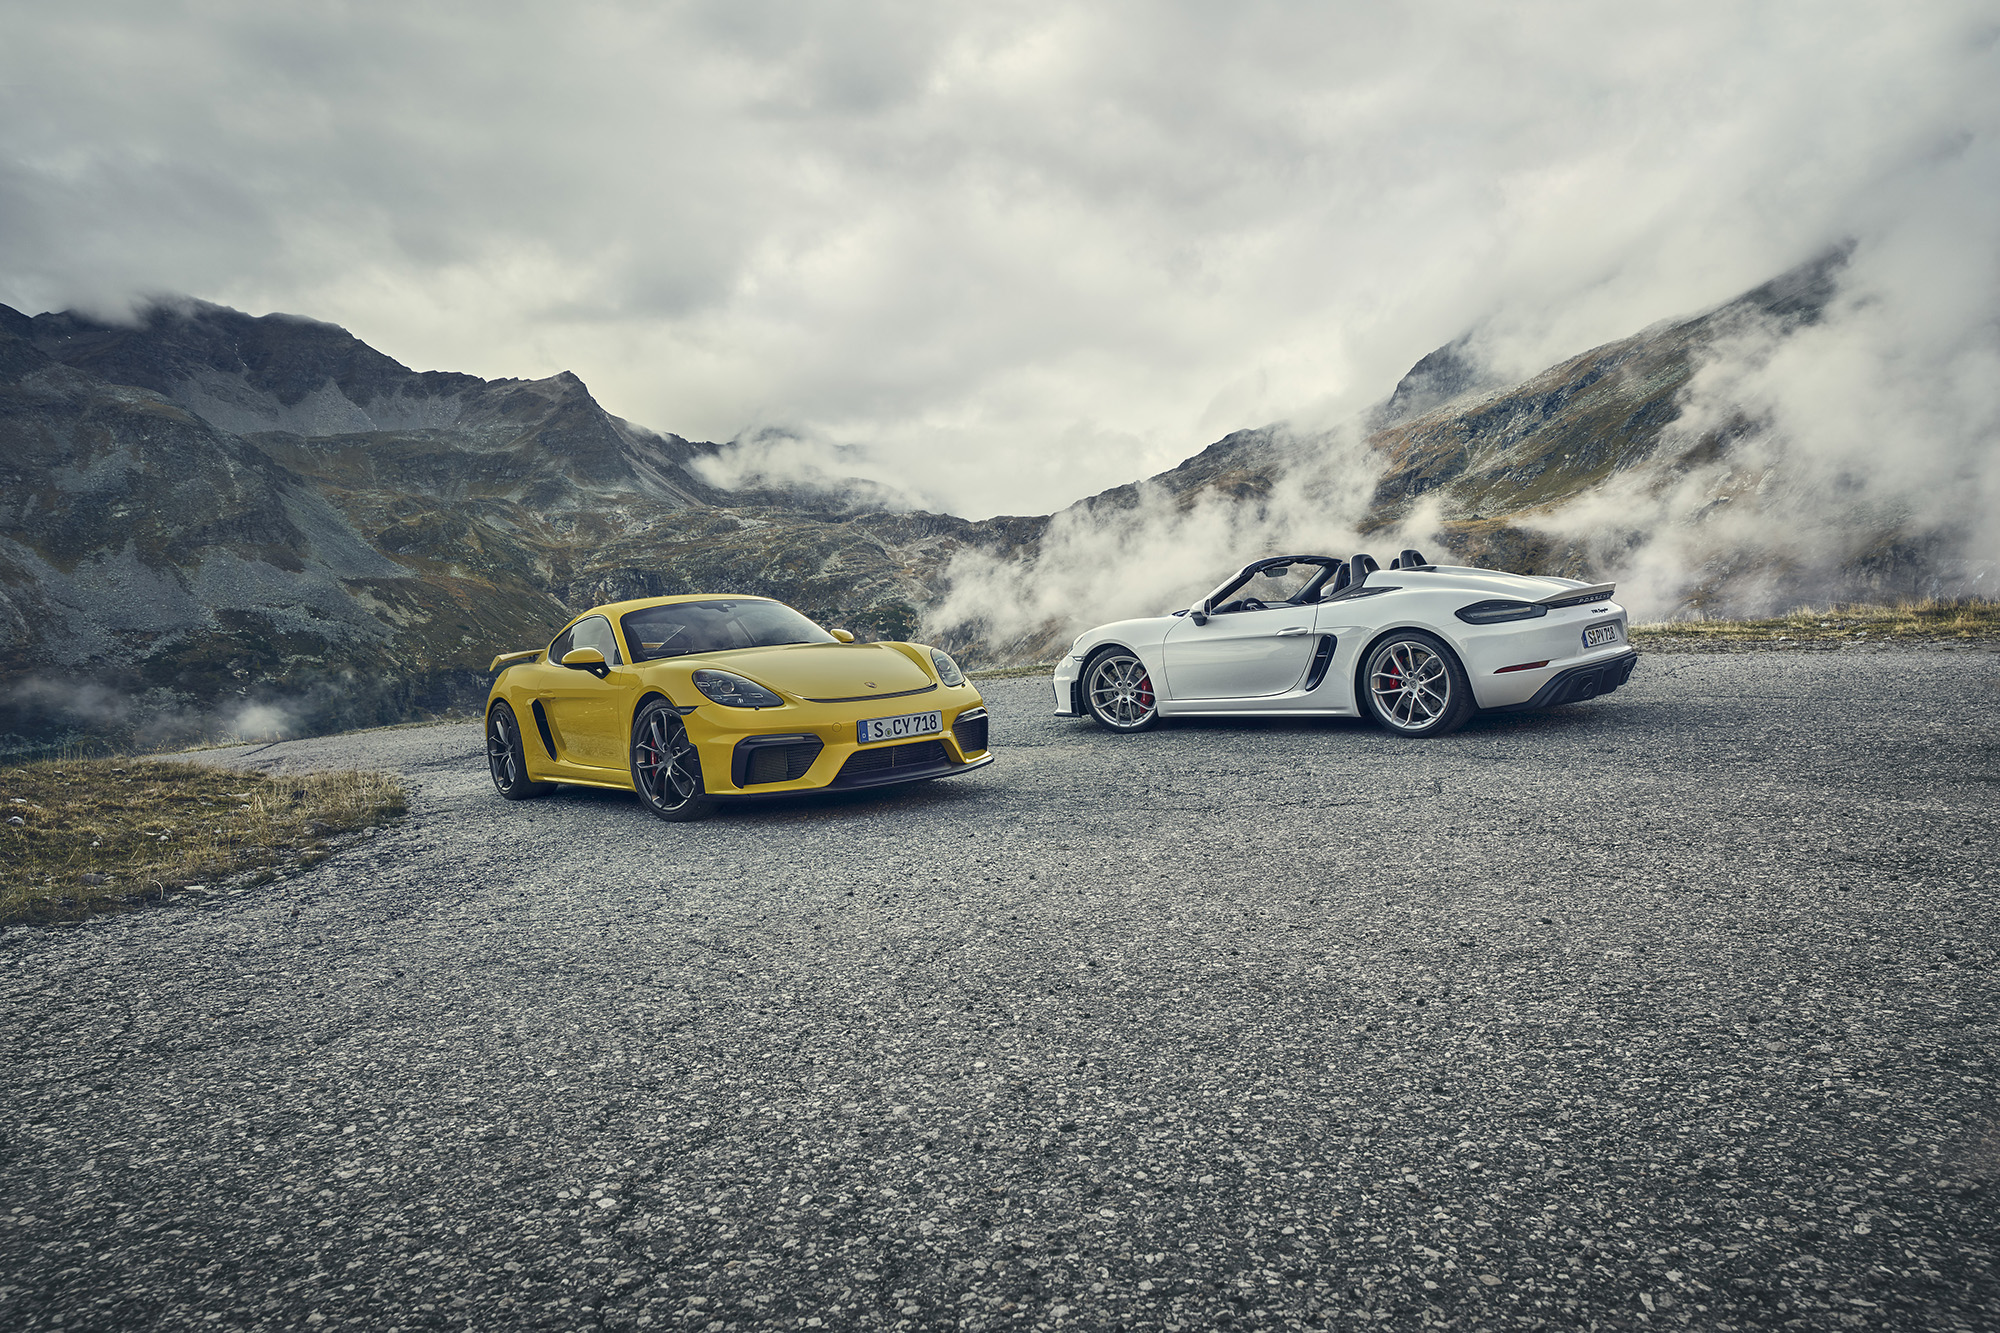 Porsche Pops New 414-HP Flat-Six Into 2020 718 Cayman GT4, 718 Spyder